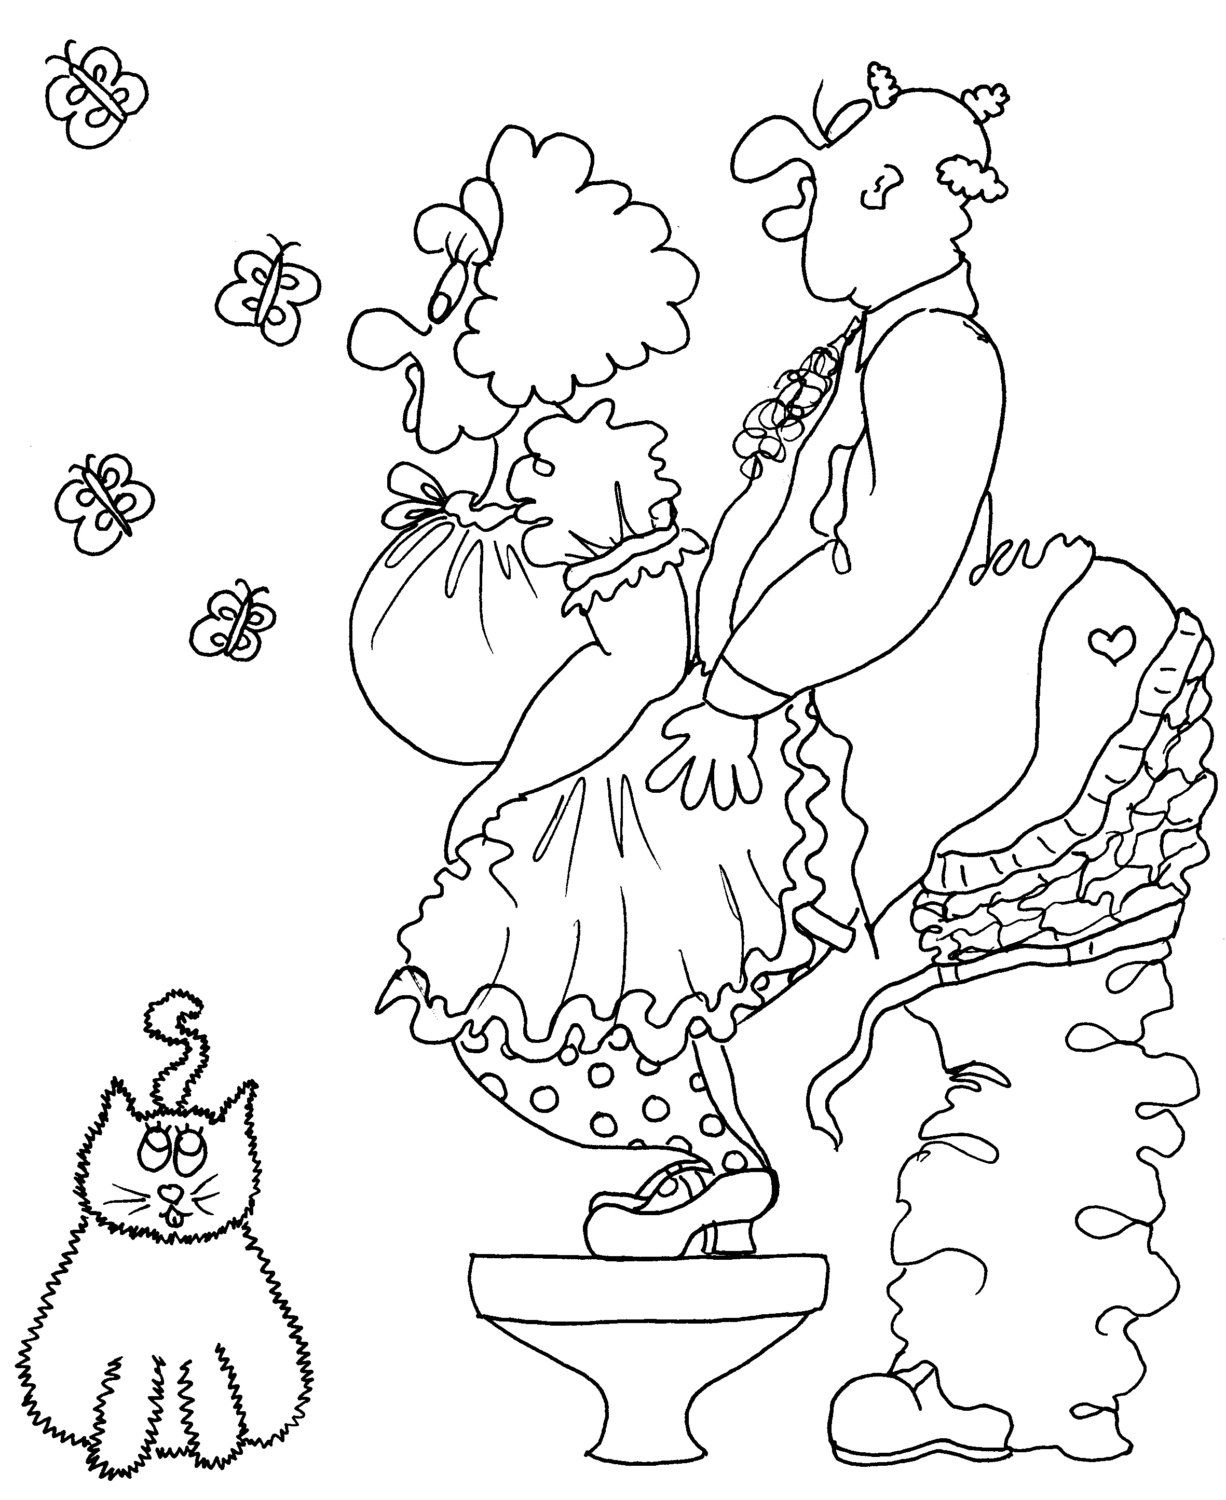 the challenge kama sutra sexy adult coloring page from chubby art cartoon colouring books for sex maniacs two dyi printable coloring pages - Cartoon Colouring Book